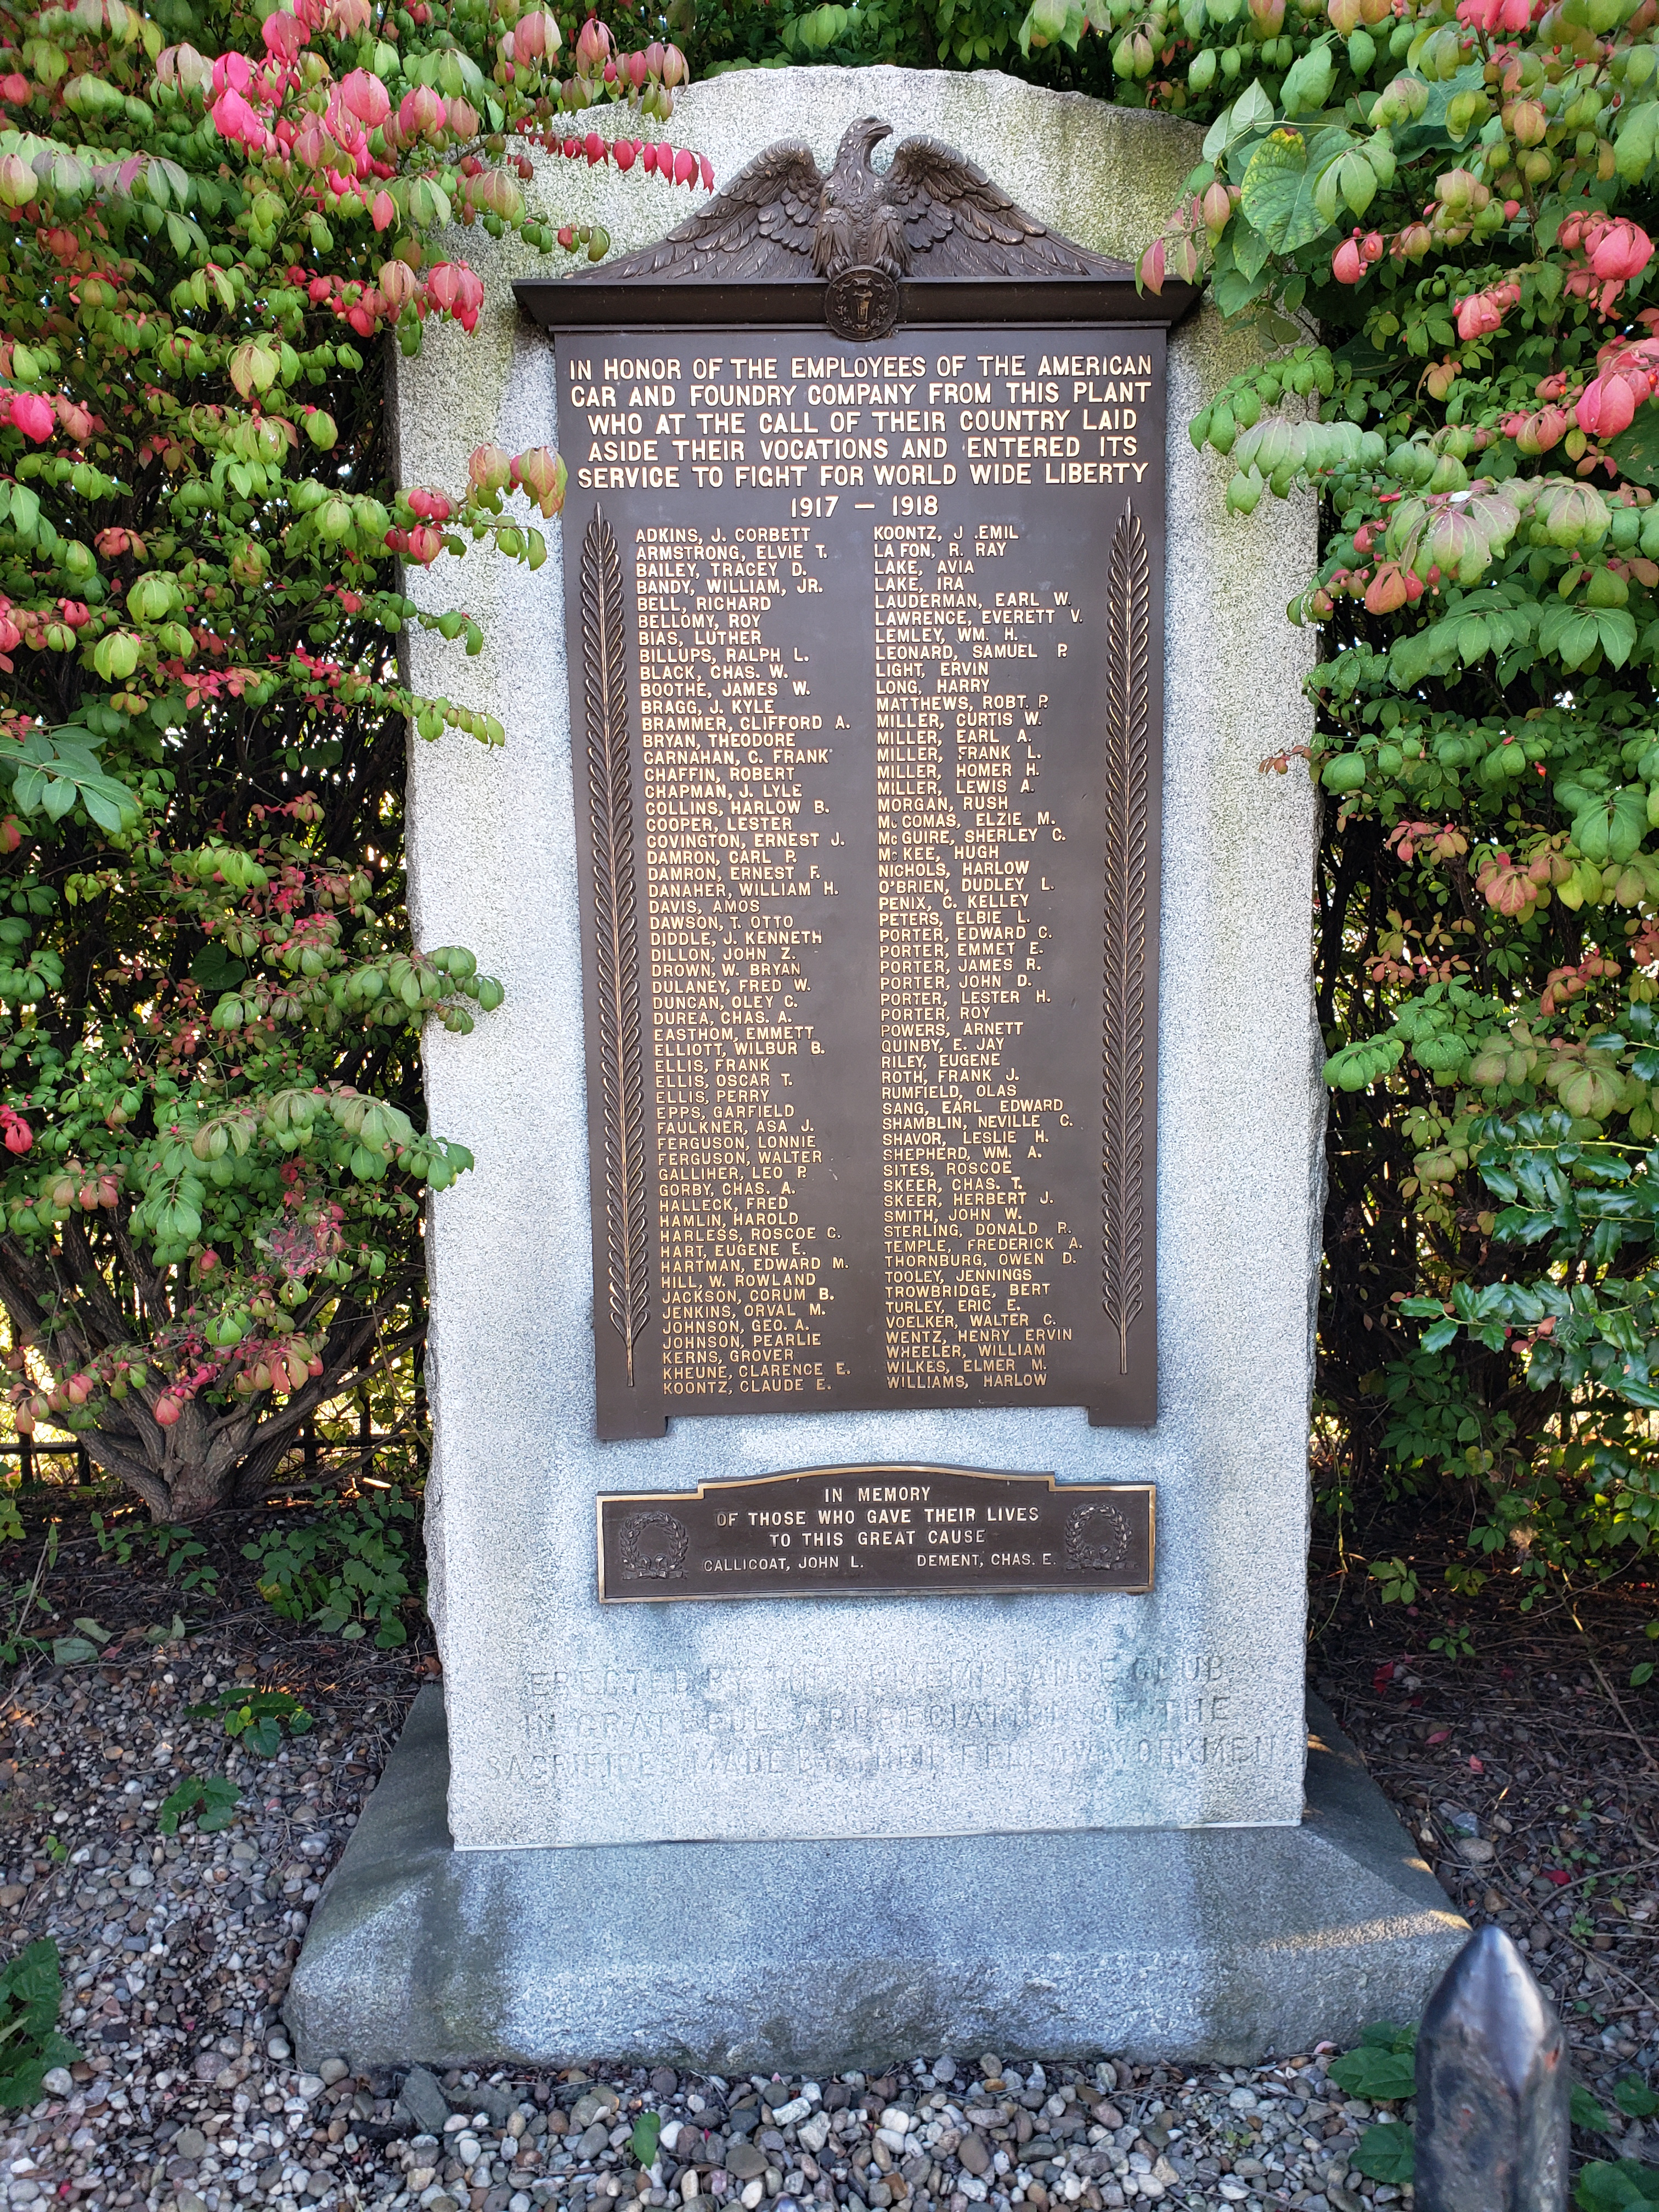 The momument with the names of those who served